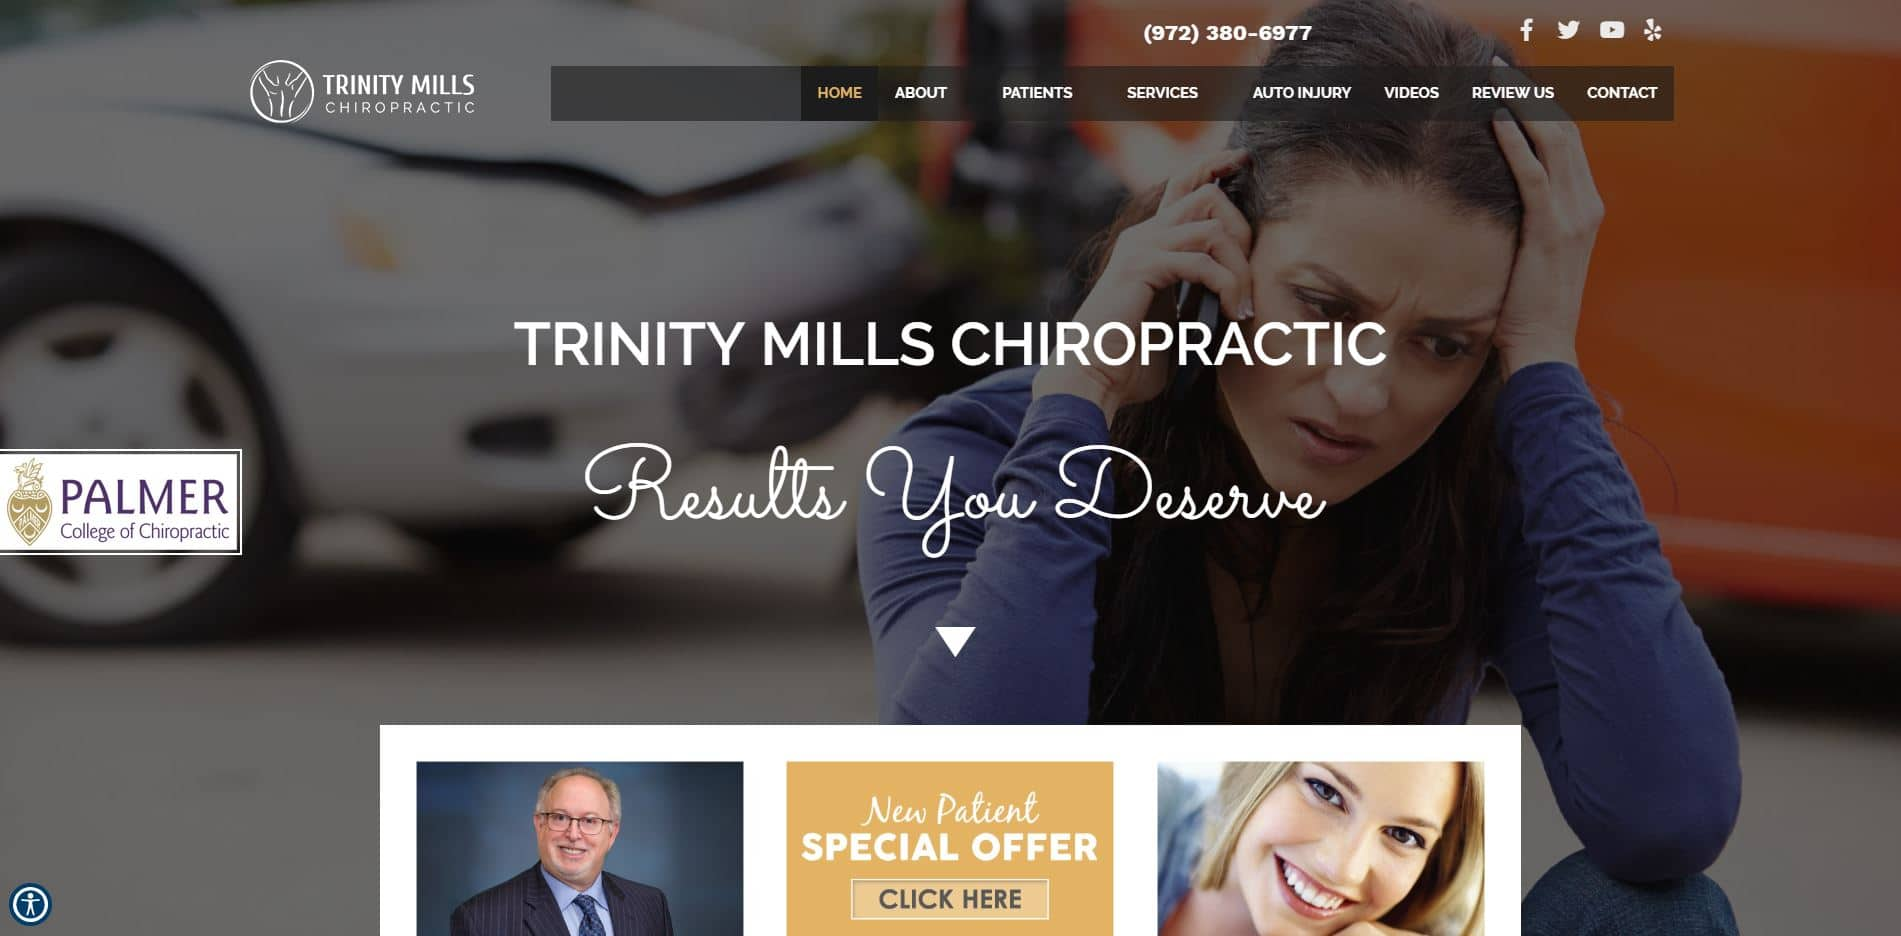 Chiropractor in Dallas